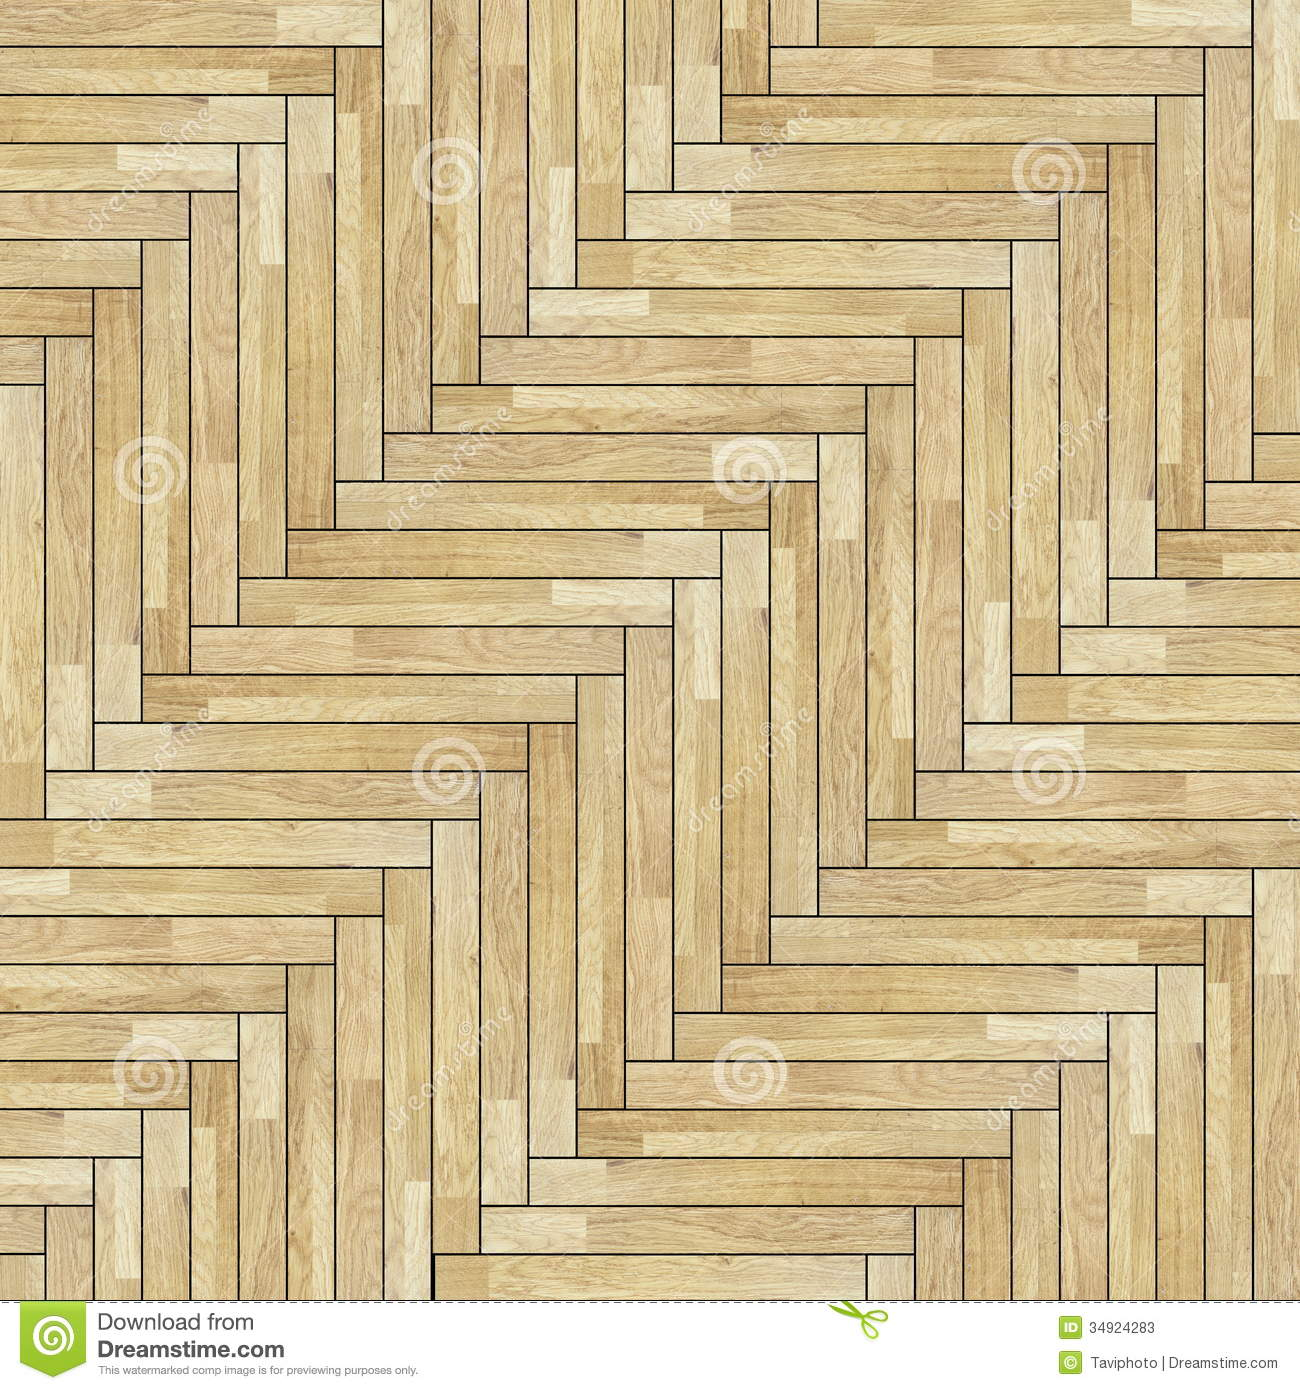 Tiles Of Parquet Floor Stock Image Image Of Linoleum